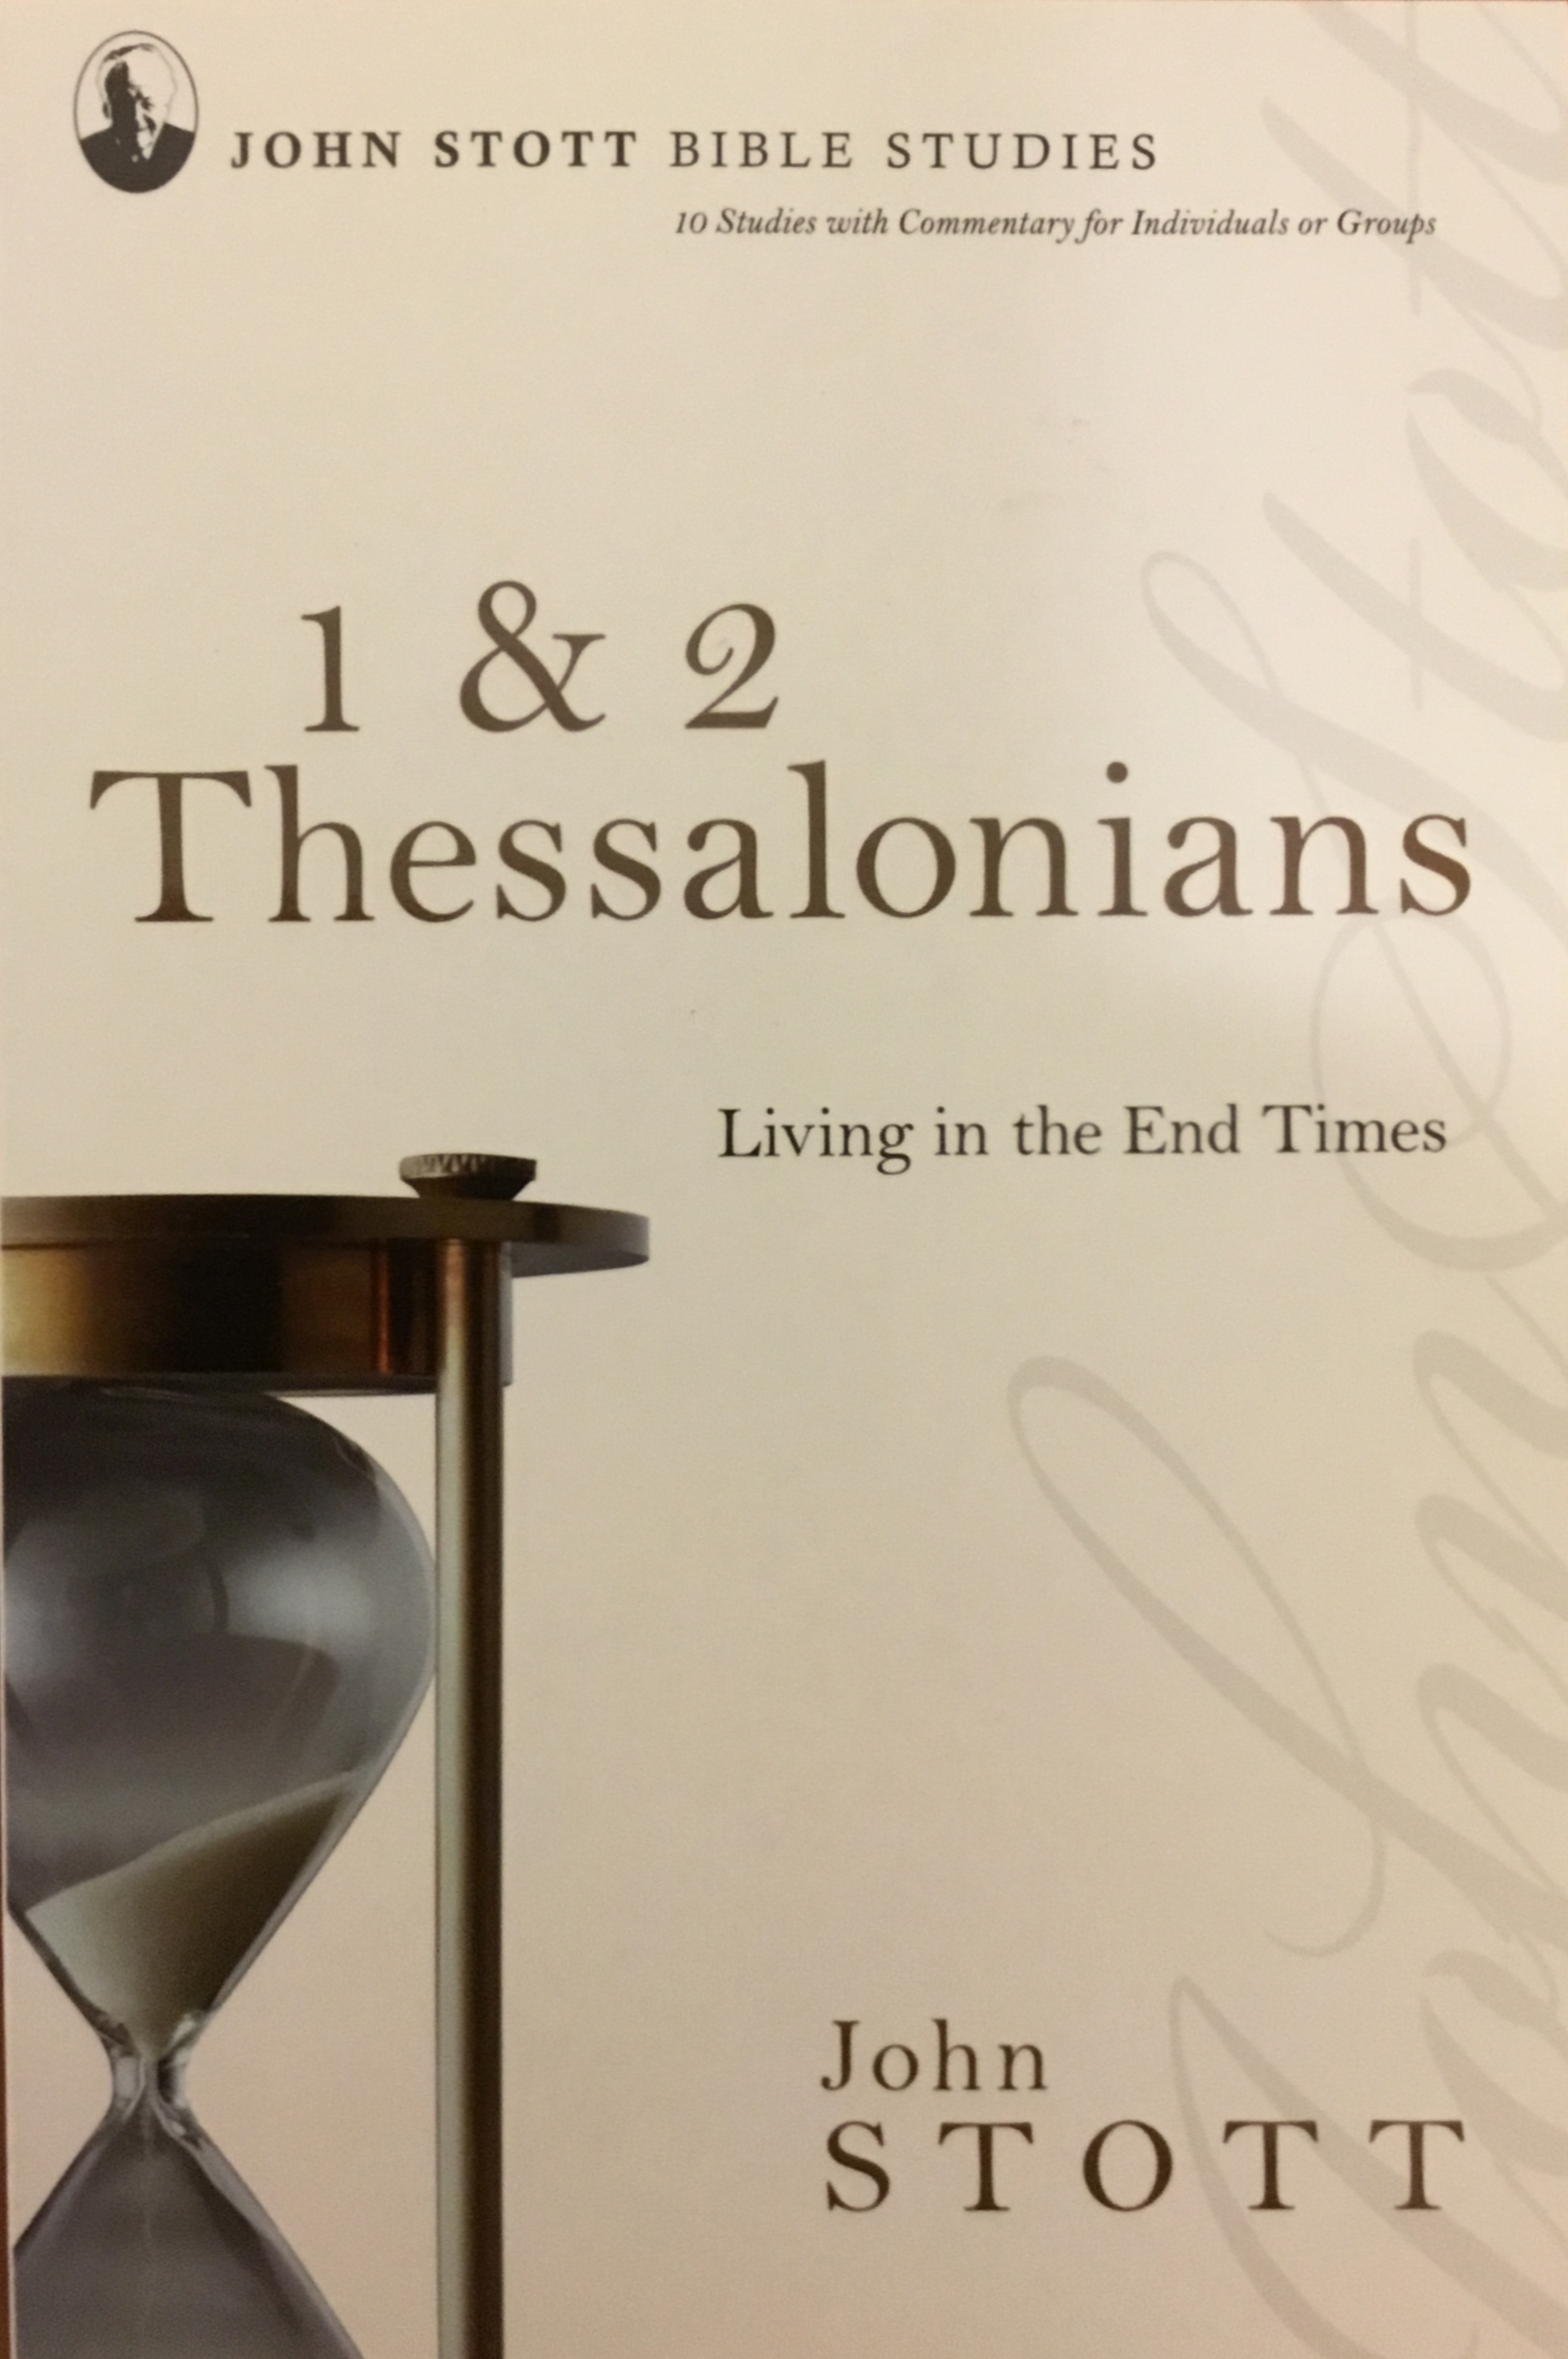 Living in the end times:1 & 2 Thessalonians